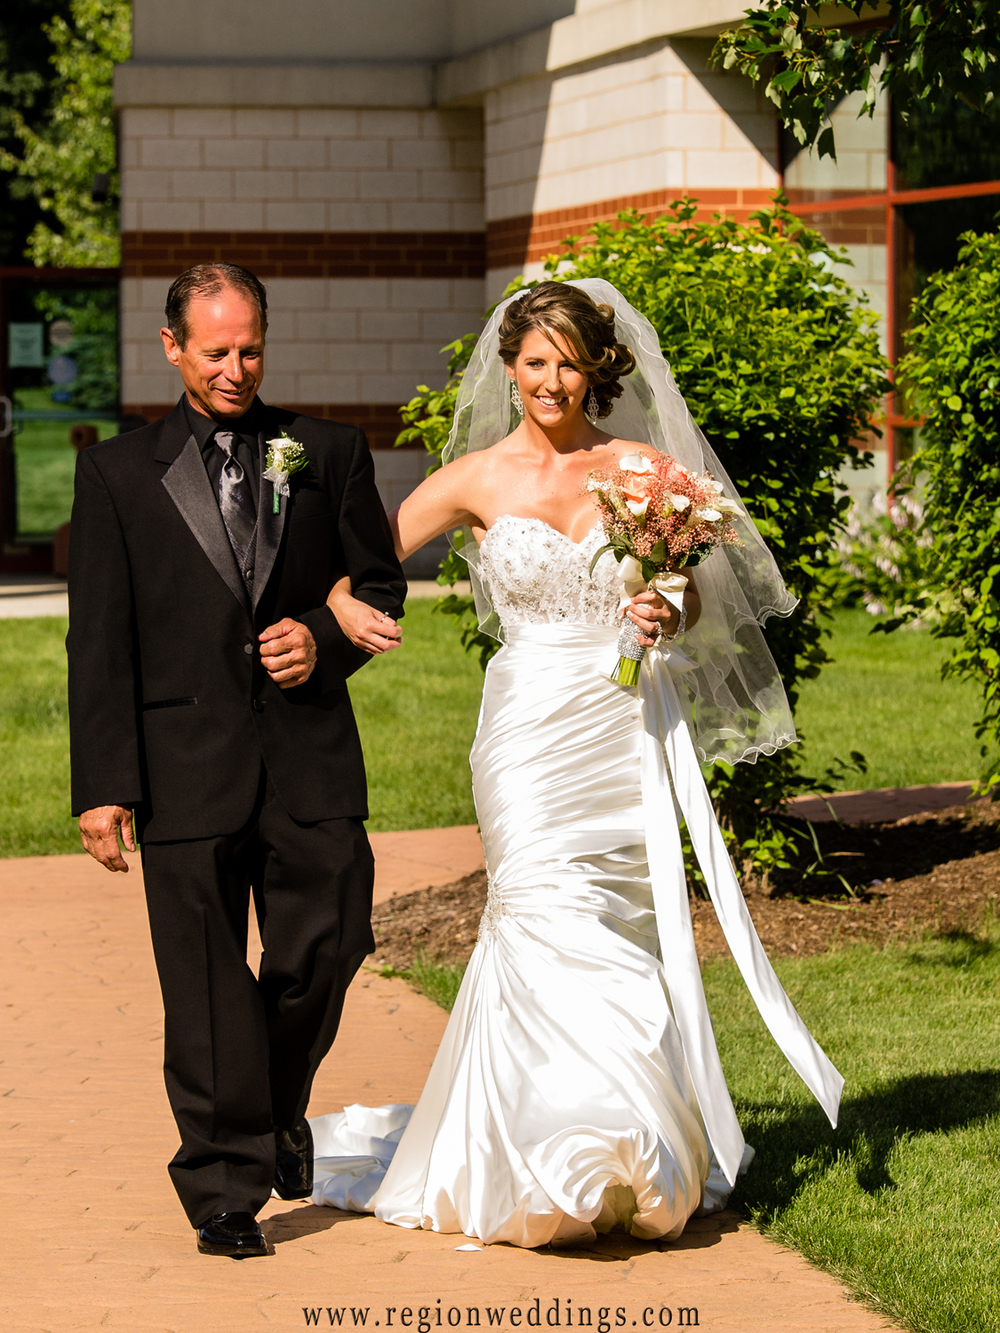 The bride makes her entrance at an outdoor ceremony at the Halls of St. George.